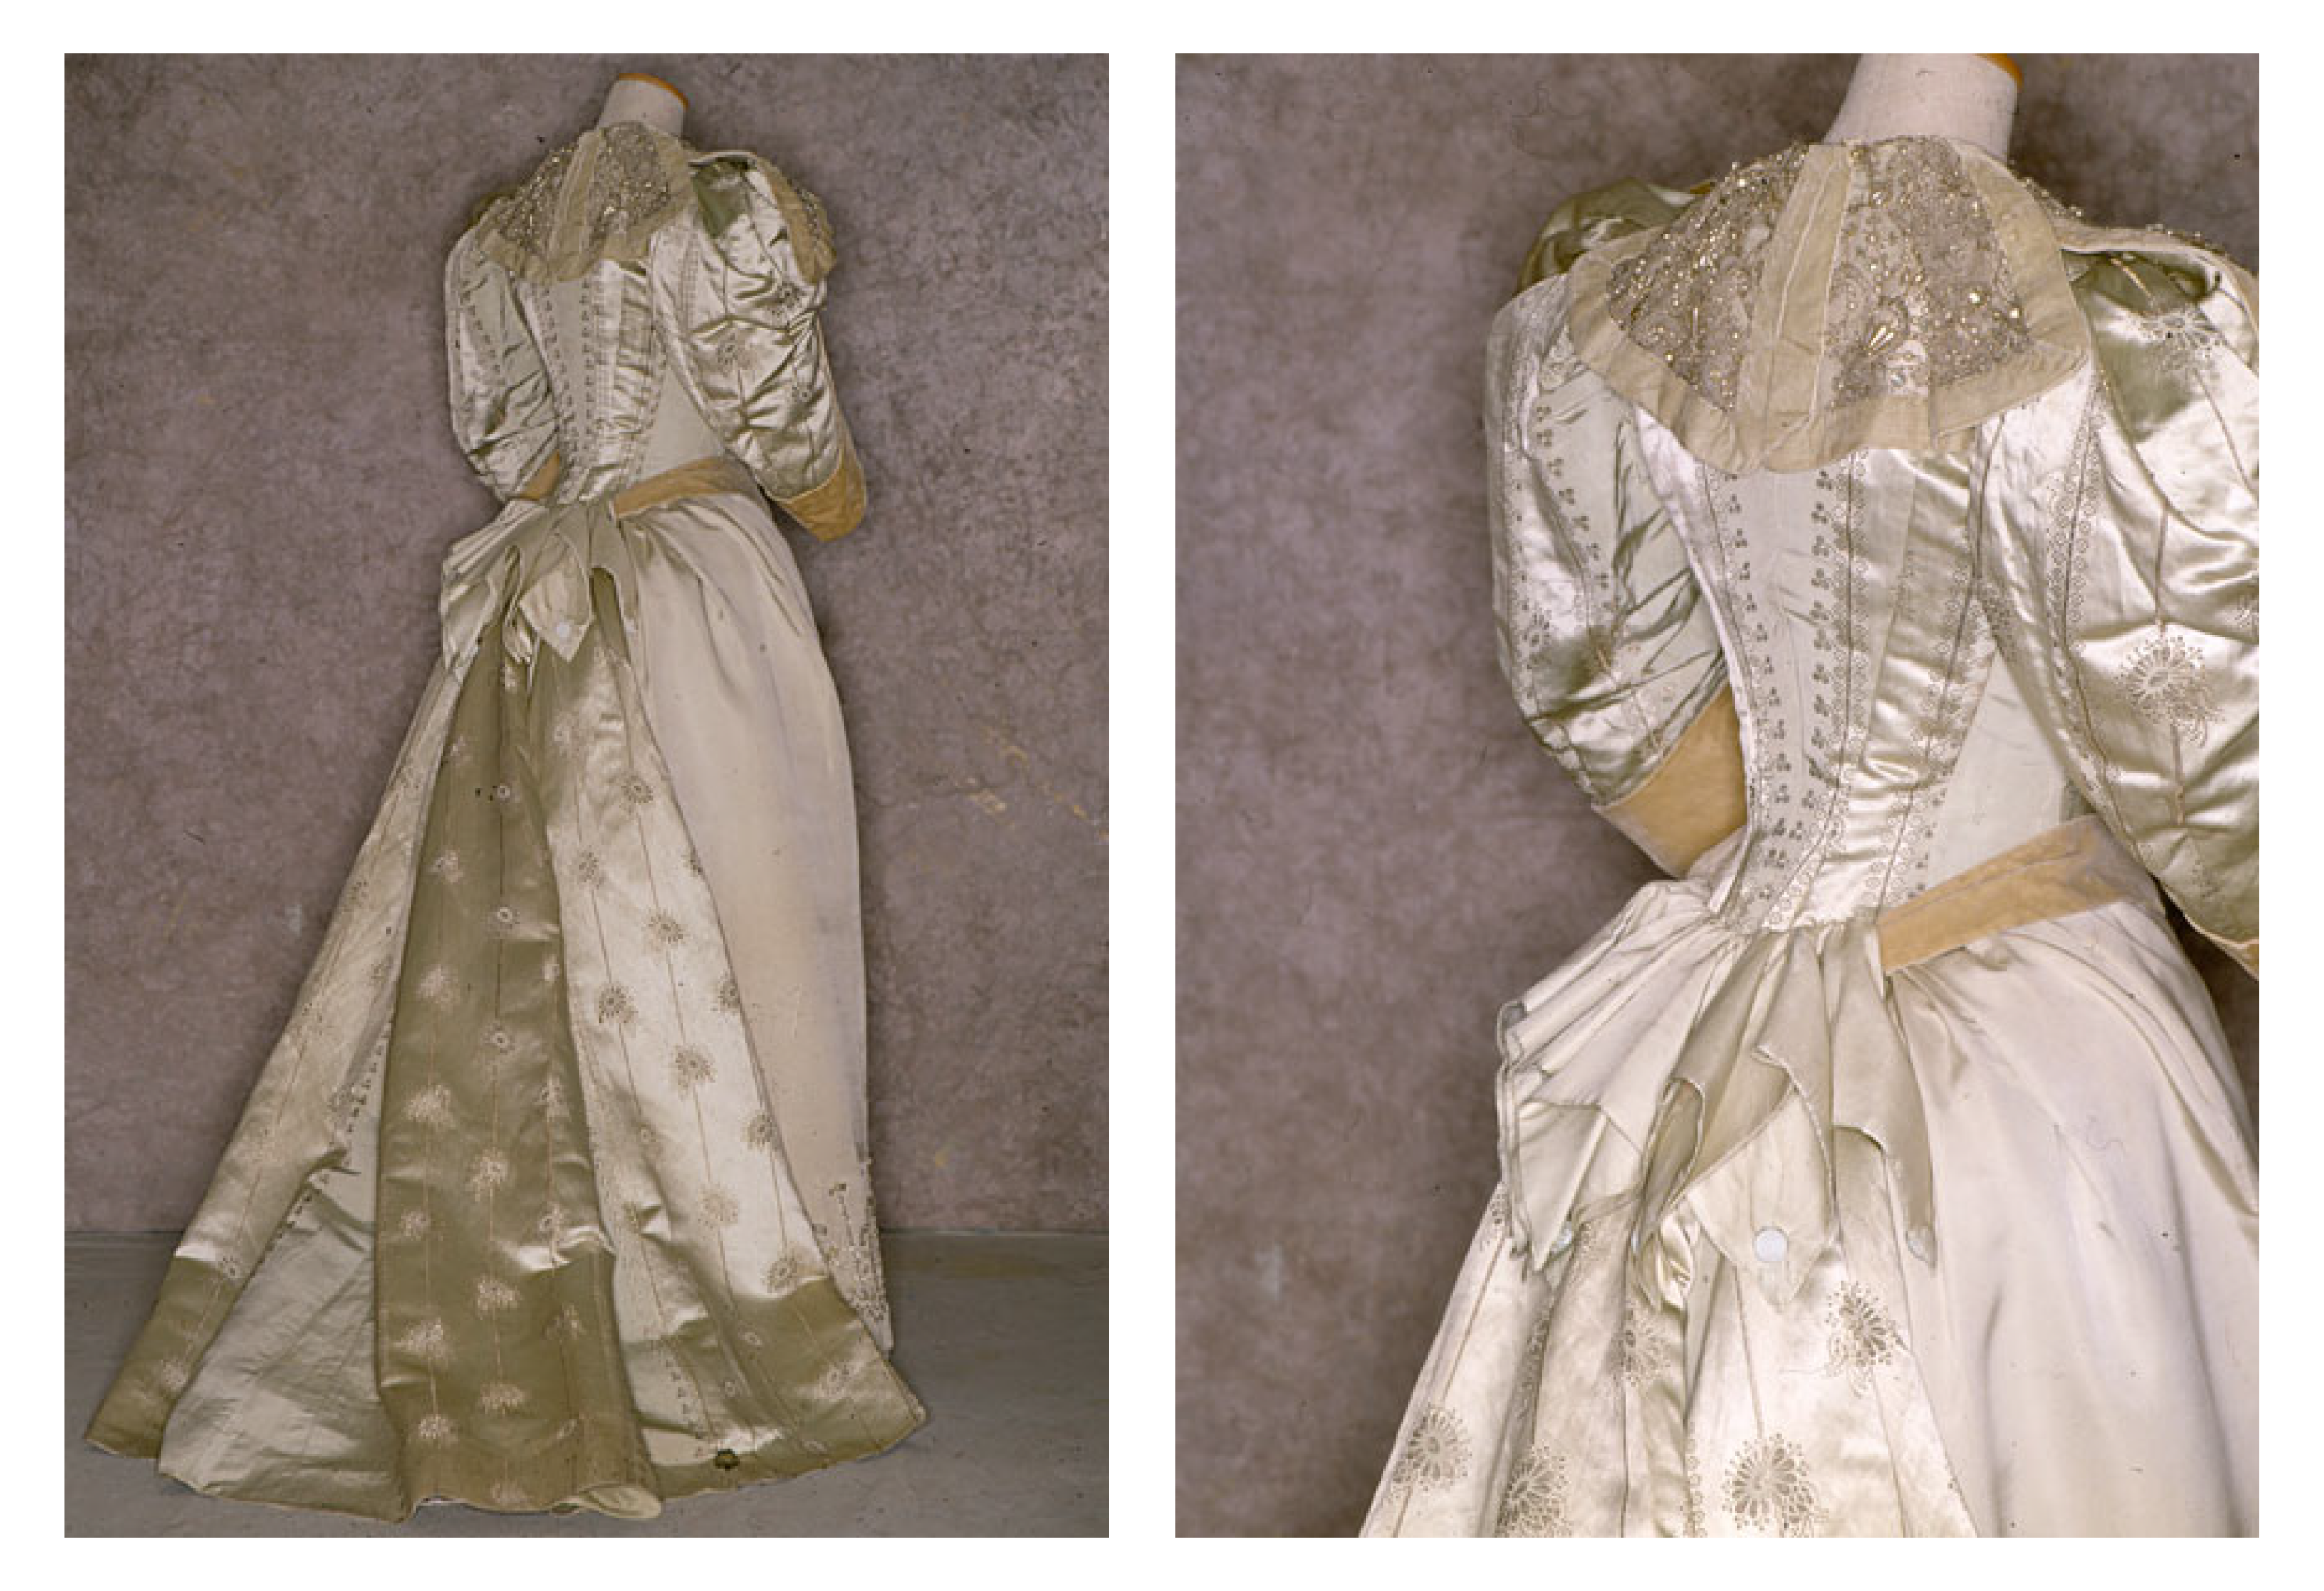 clothing later victorian 1870 1890 essay Fashion timeline 1870 to 1880 1870 to 1880 jun 27, 2010   by admin next 1880 to 1890 back fashion timeline 1869 - 1870 brown silk moiré & velvet gown.